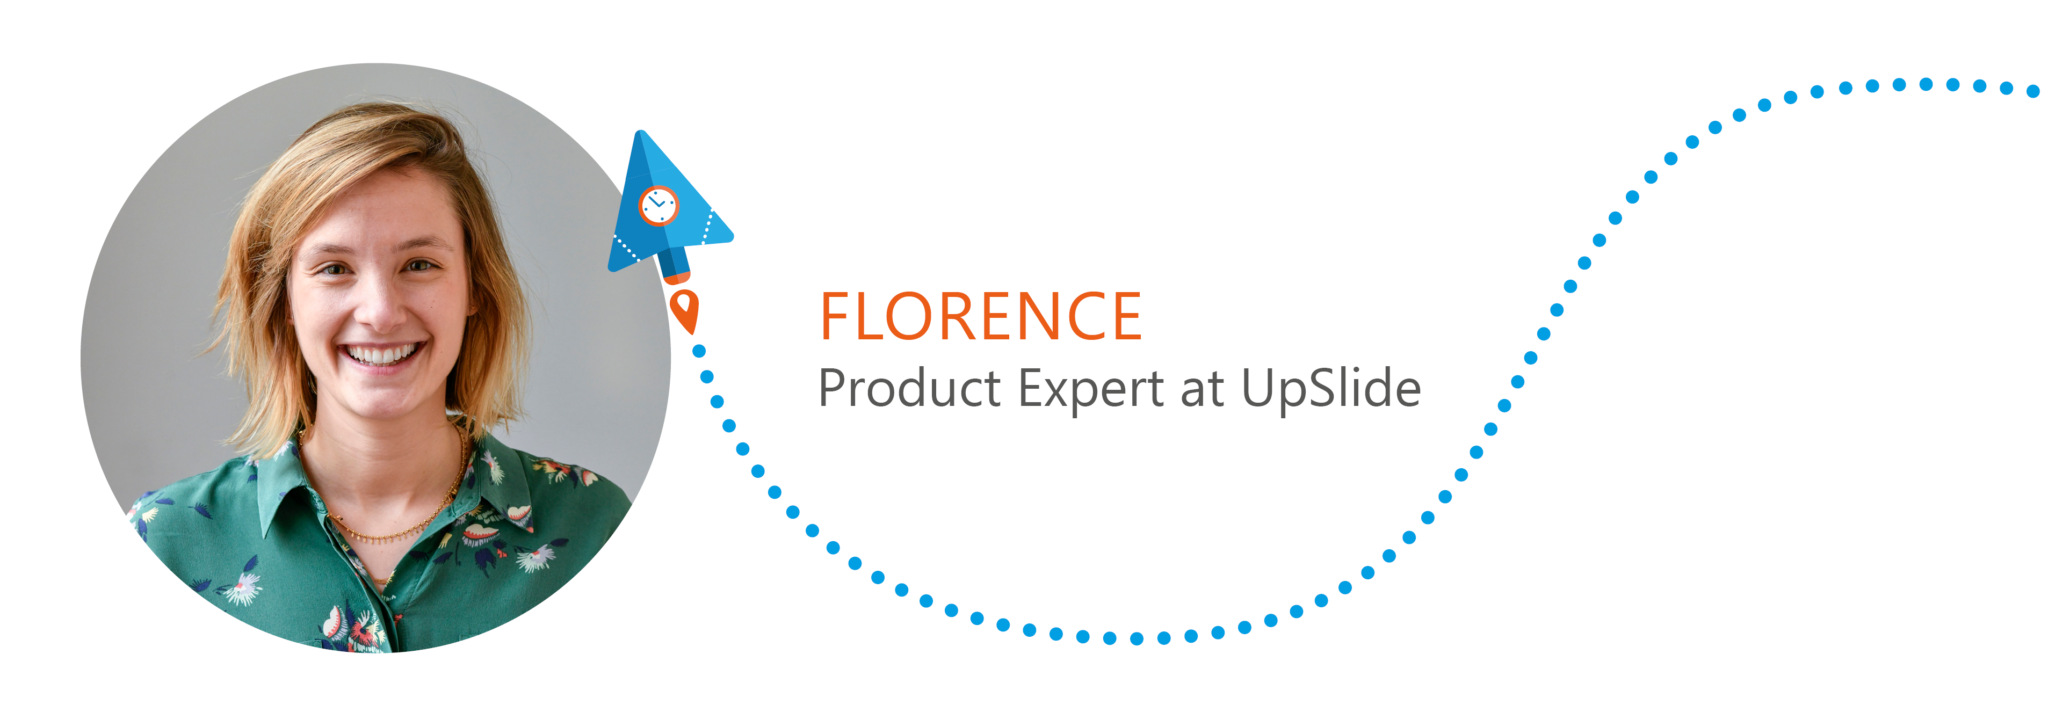 Introducing Florence, Product Expert